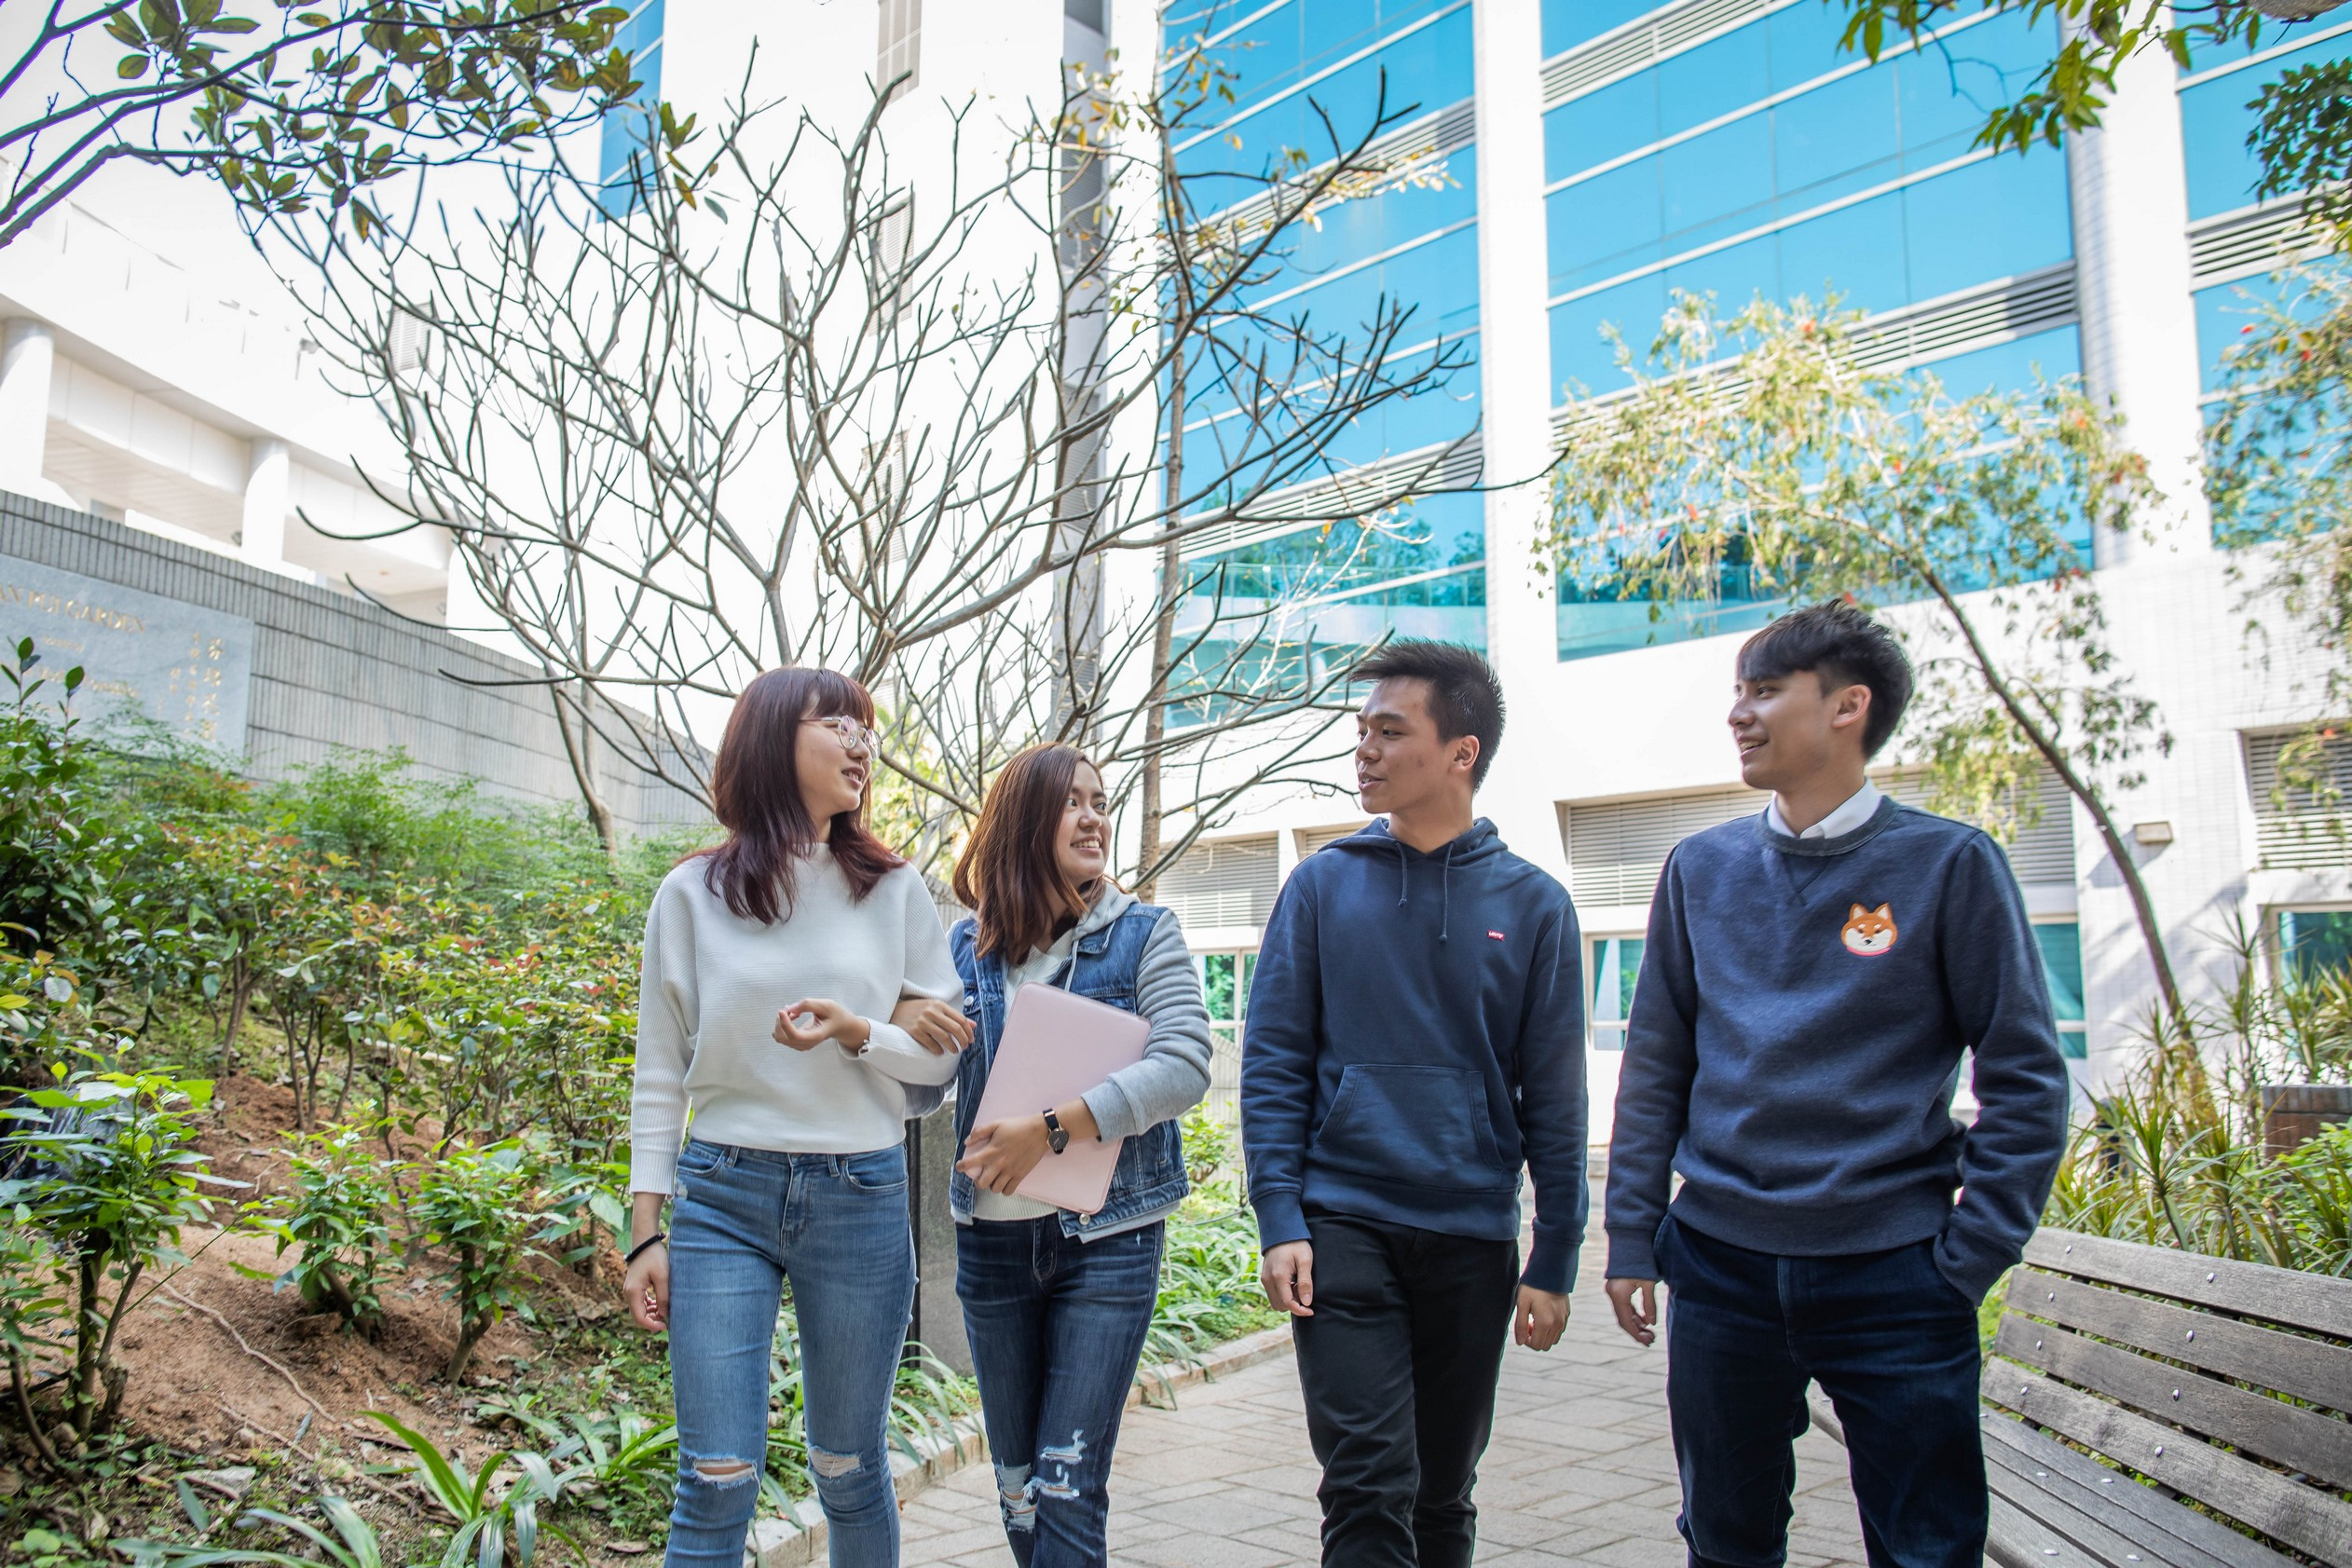 Group of students having a walk in Fan Pui Garden at medical campus.